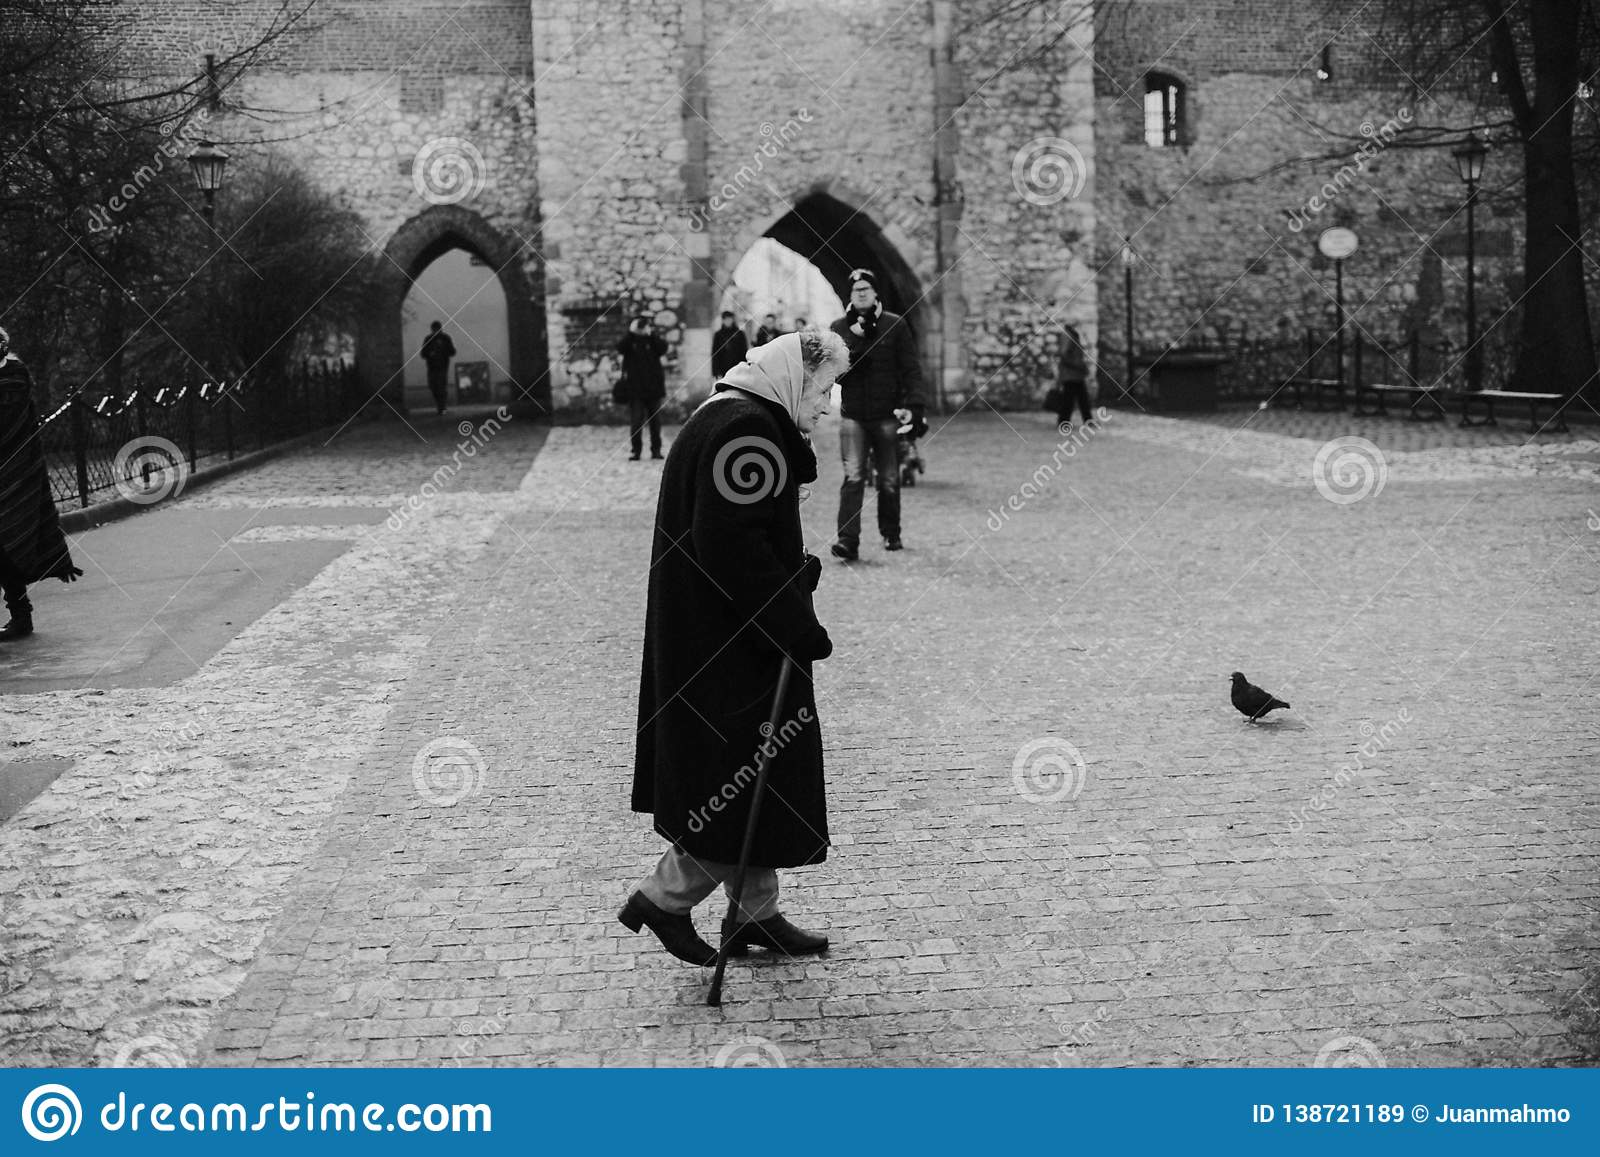 KRAKOV, POLAND - DECEMBER 23, 2017: Old women in simple poor clothes and light shawl on head, leaning on a stick, slowly walking